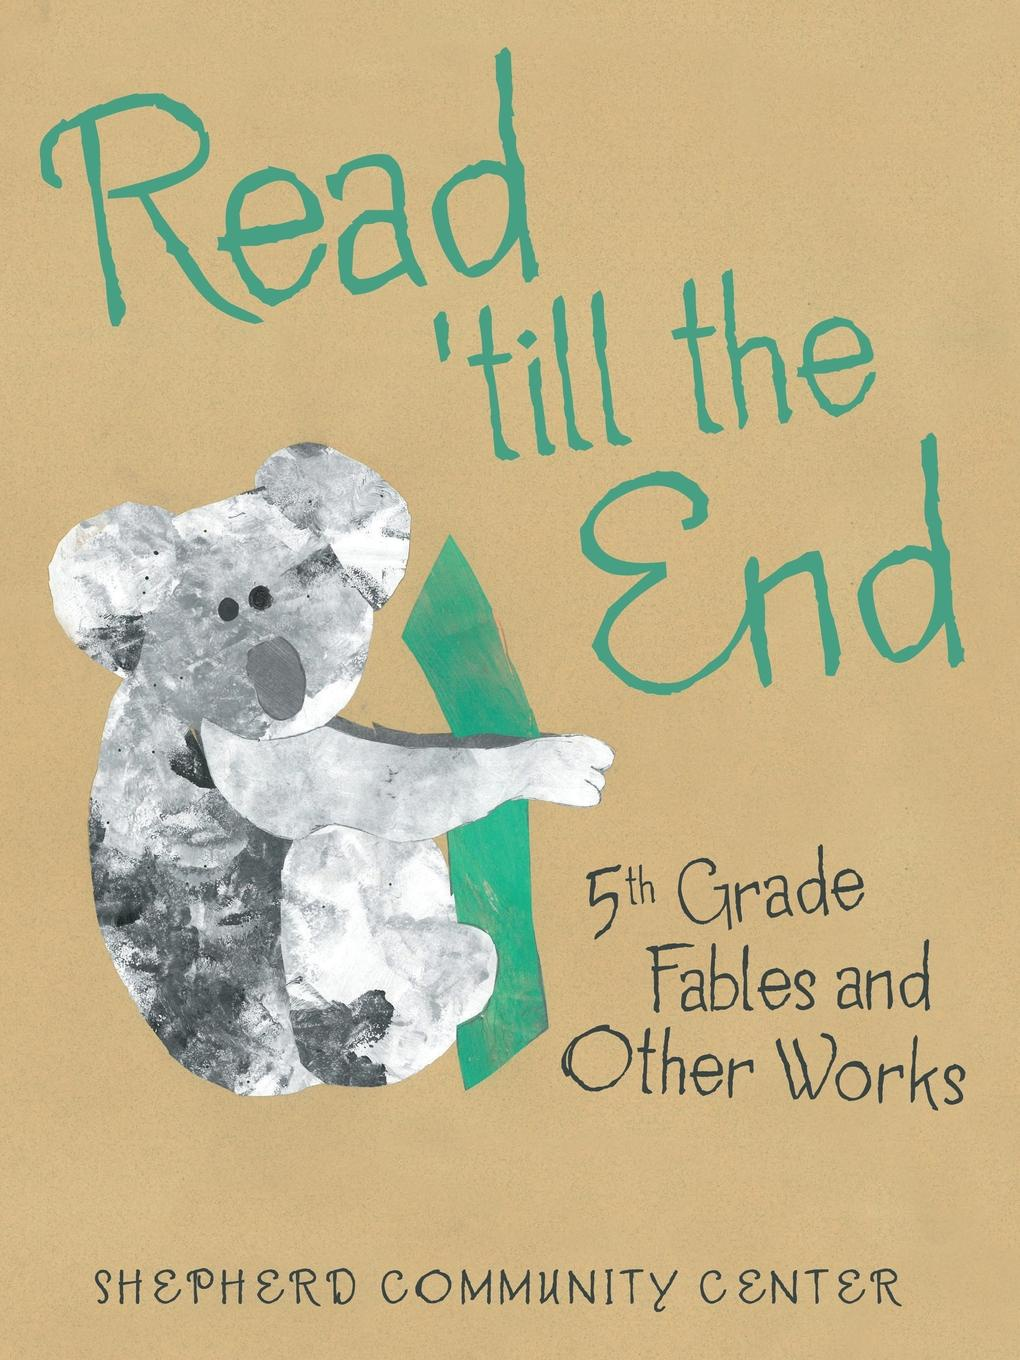 Shepherd Community Center Read .Till the End. 5Th Grade Fables and Other Works